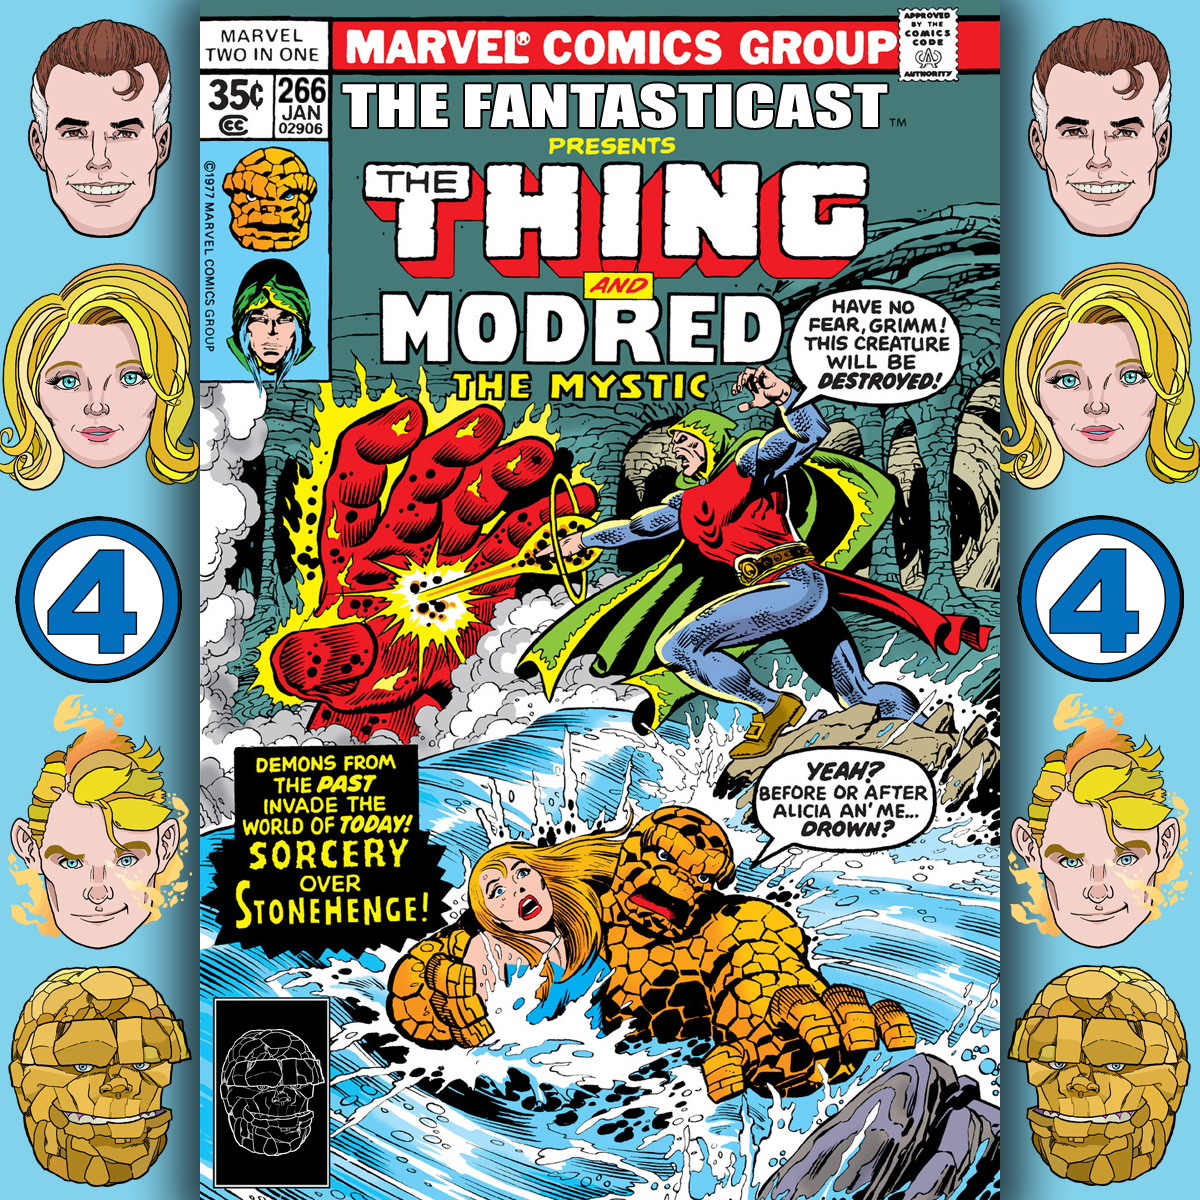 The Fantasticast Episode 266